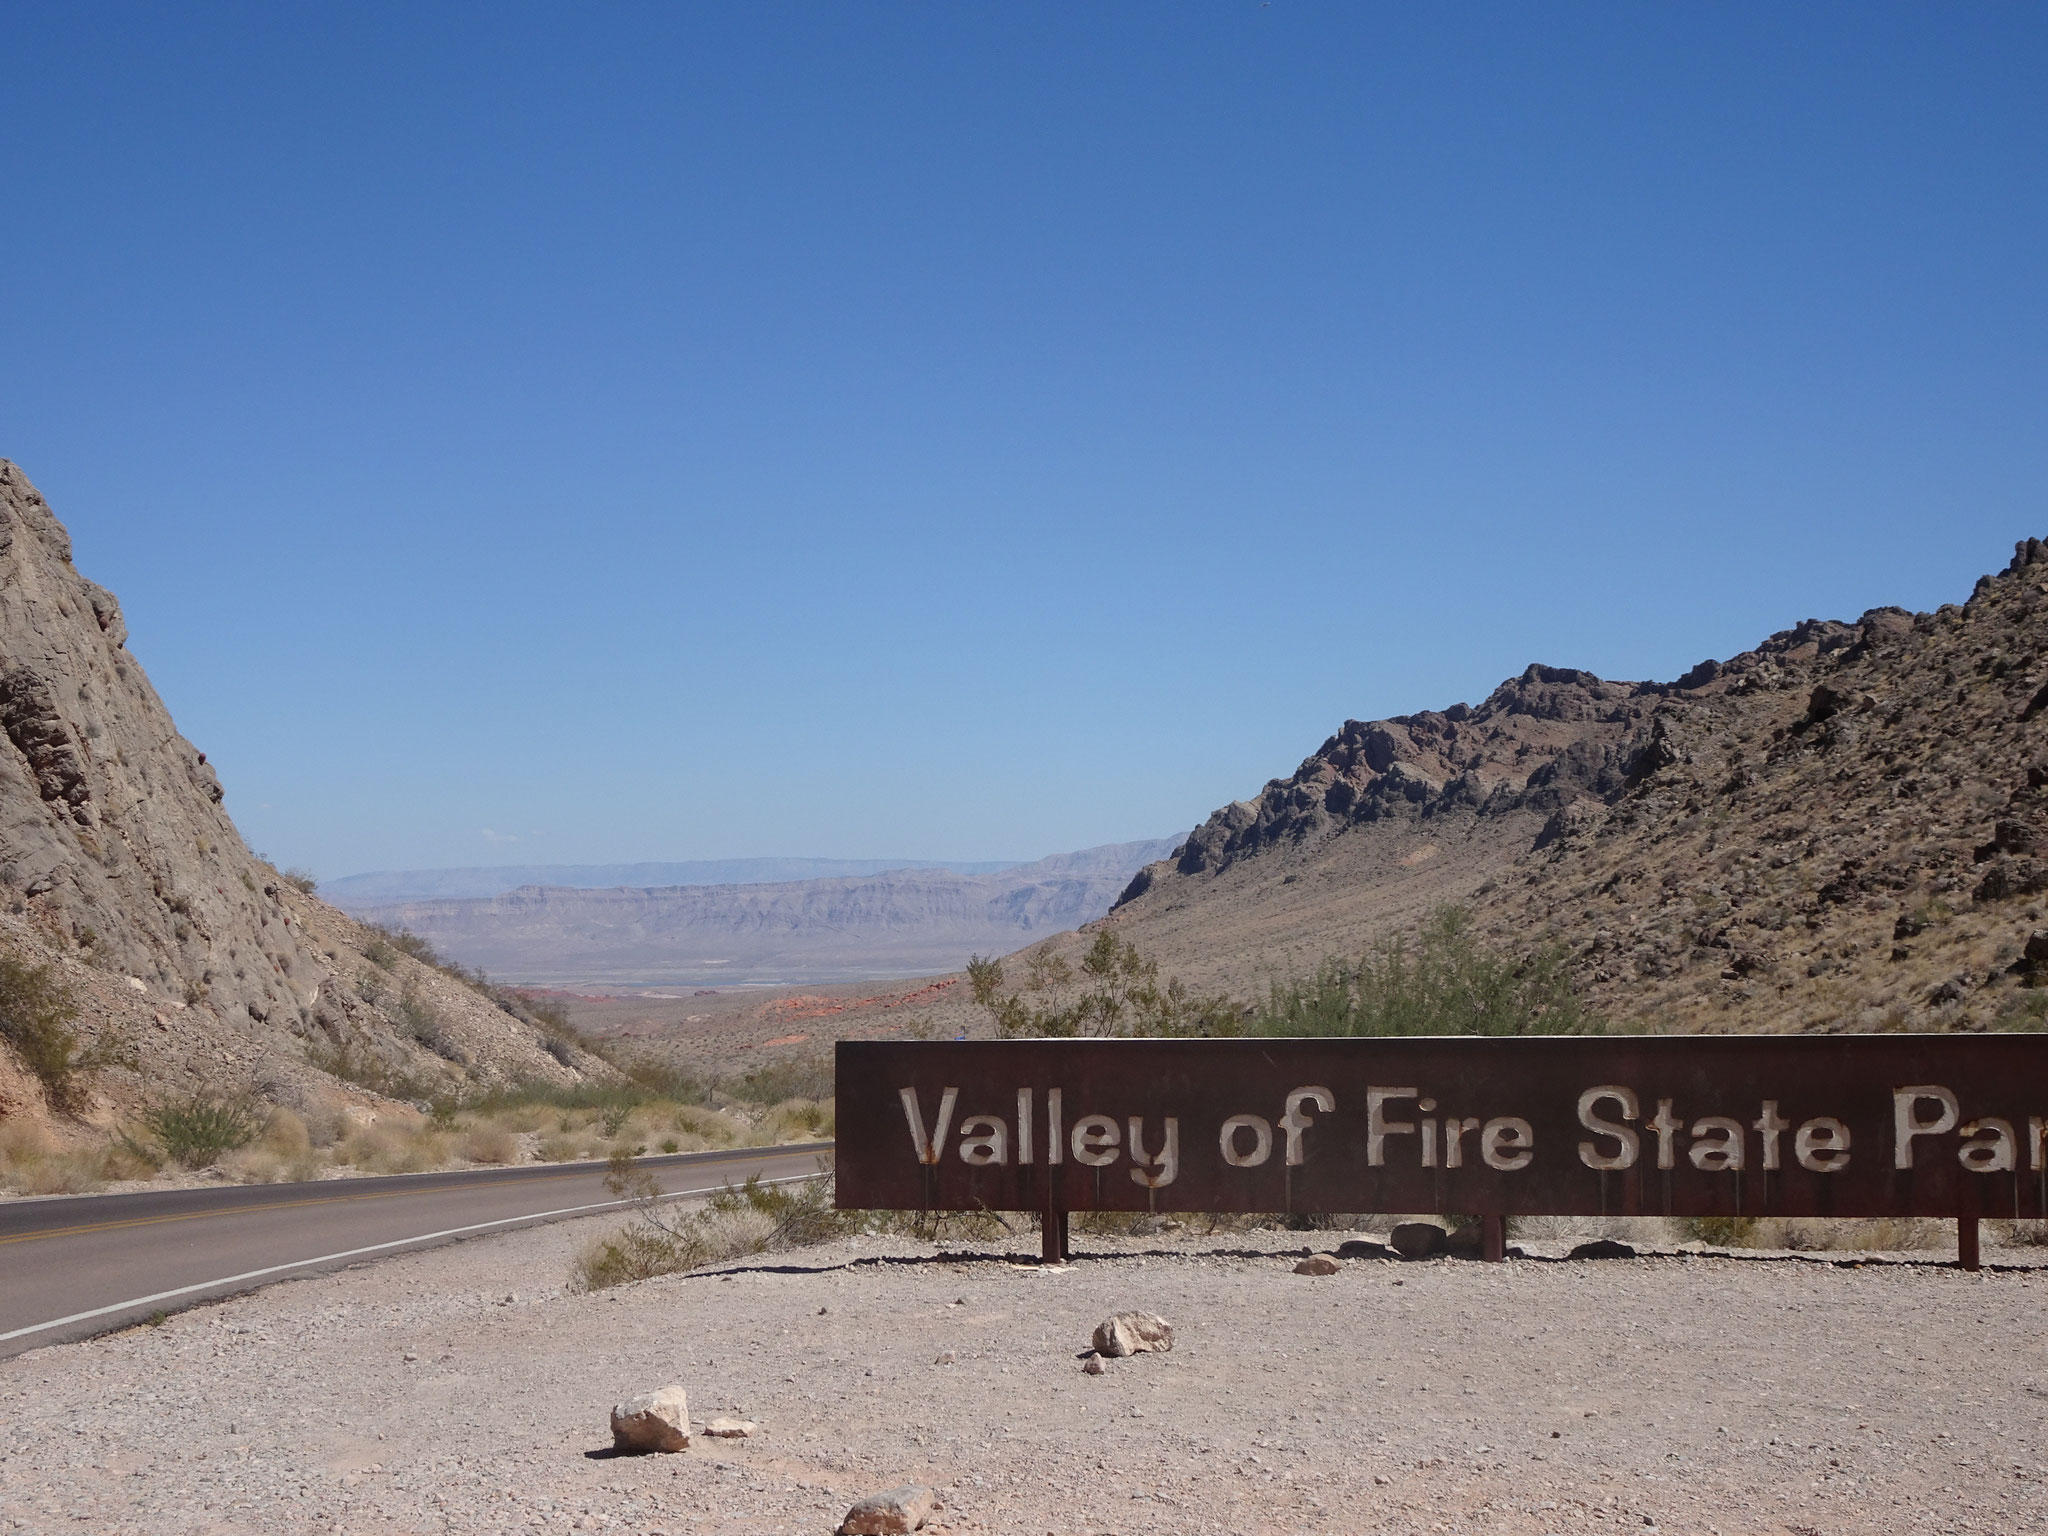 Valley of Fire (Nevada)